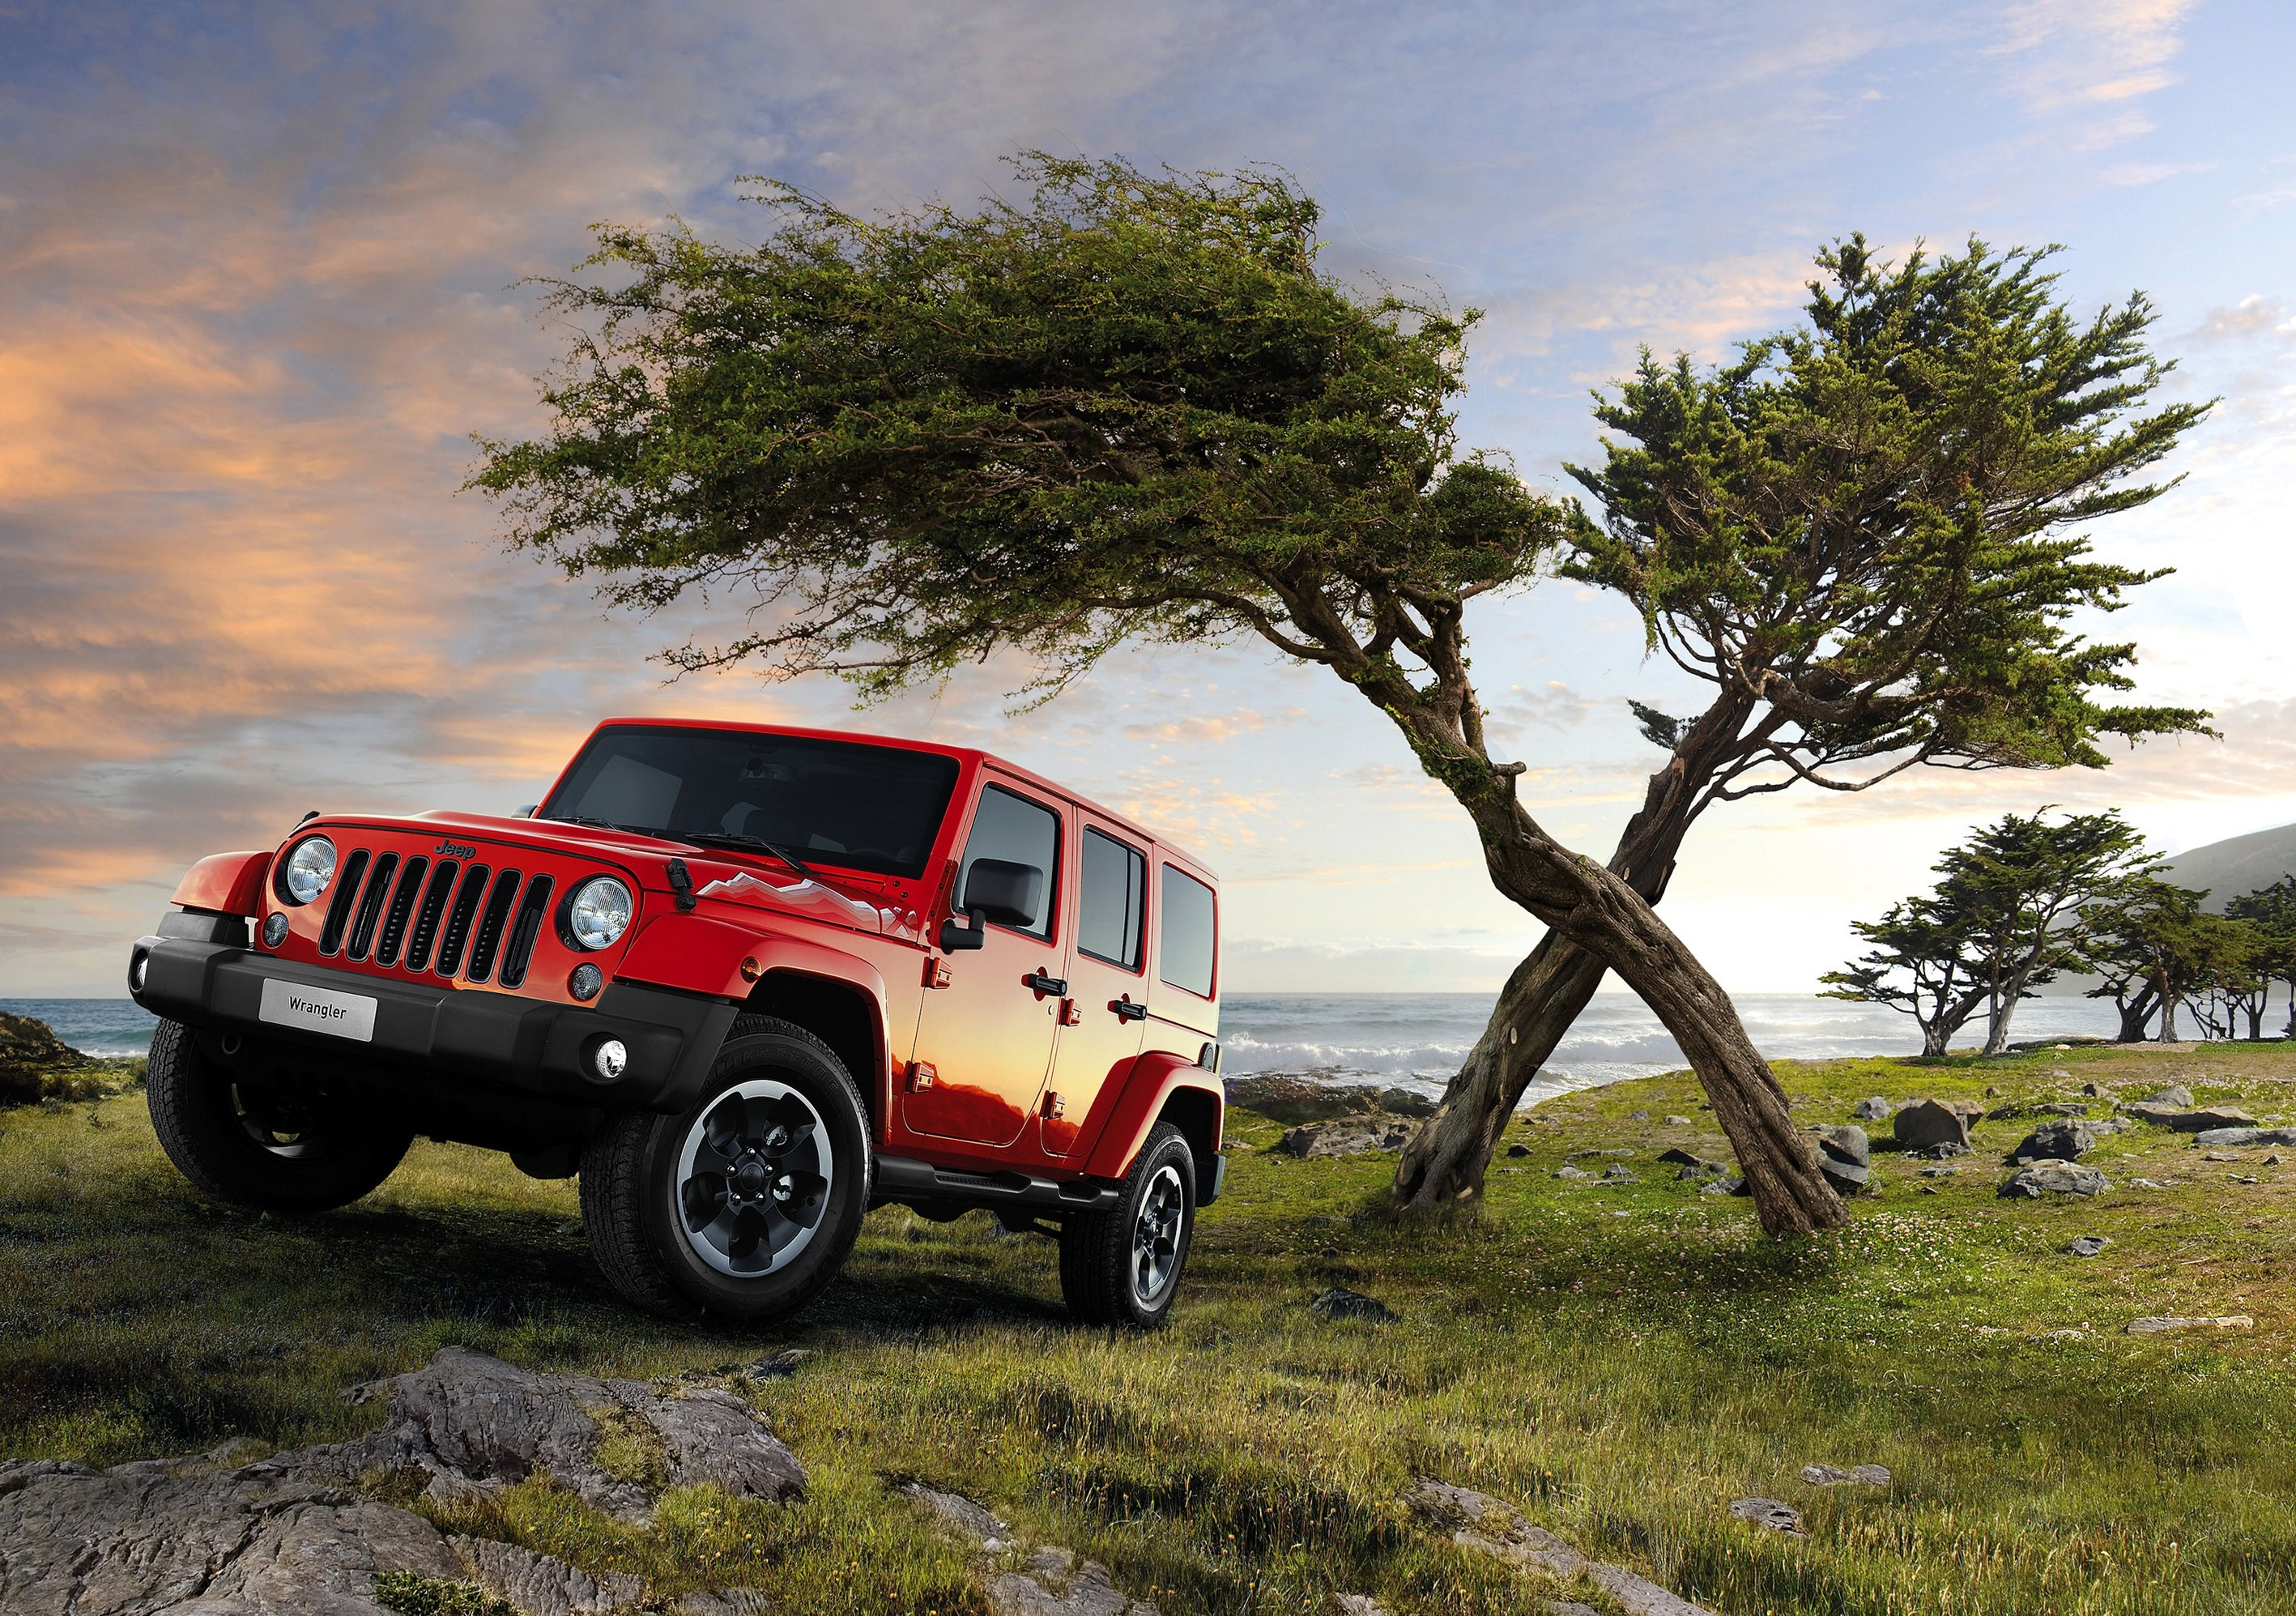 Red Jeep Wrangler Background Wallpaper 65141 2835x1995px 2835x1995